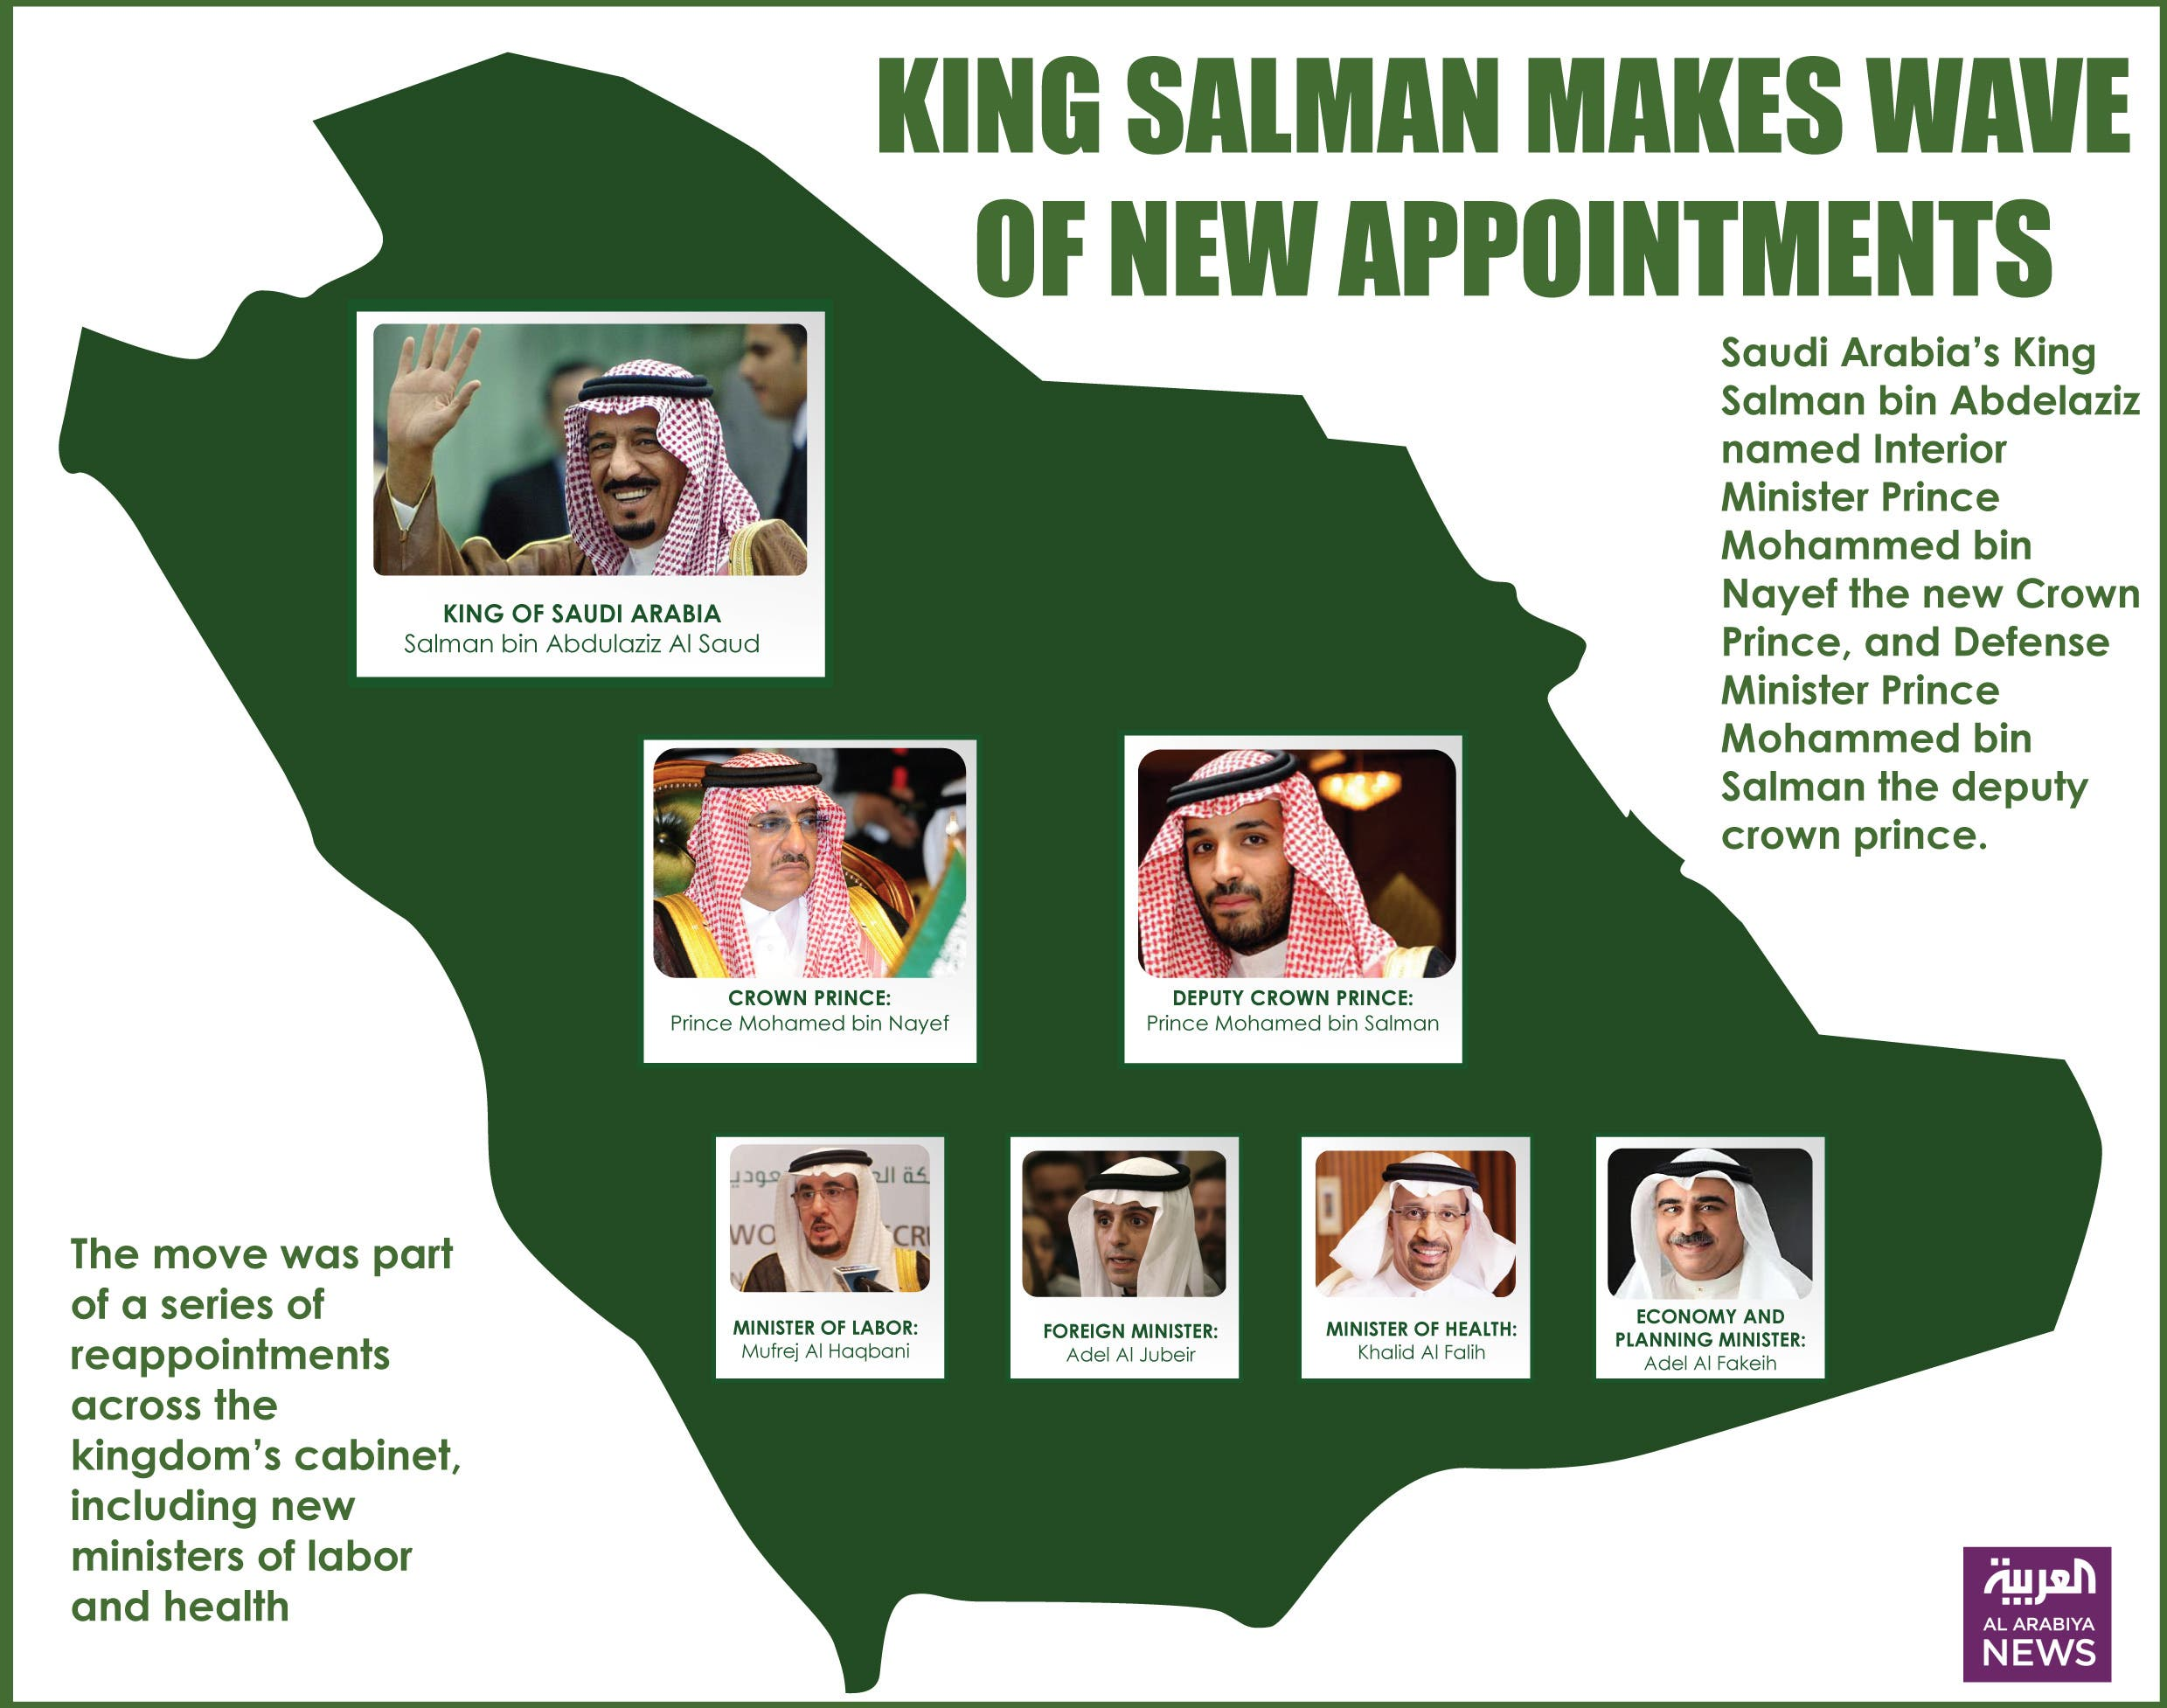 Infographic: King Salman makes wave of new appointments